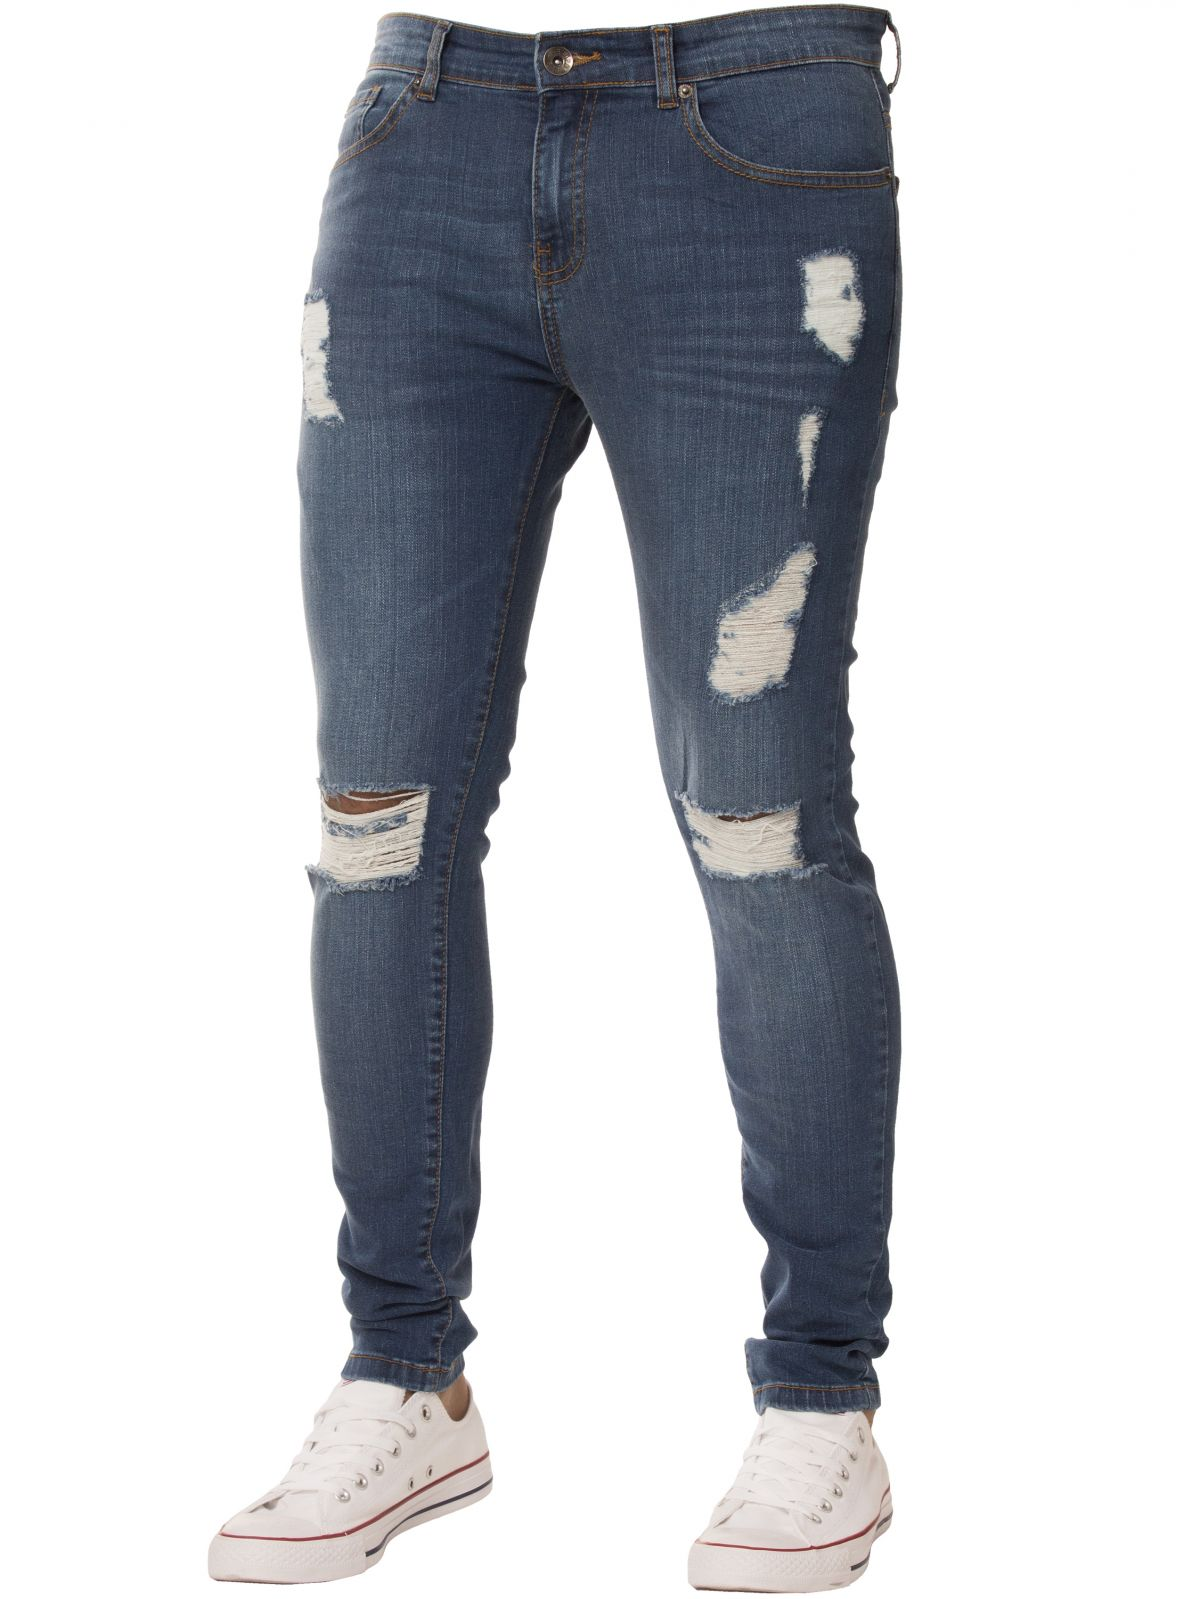 Mens Super Skinny Stretch Ripped Jeans | Enzo Designer Menswear